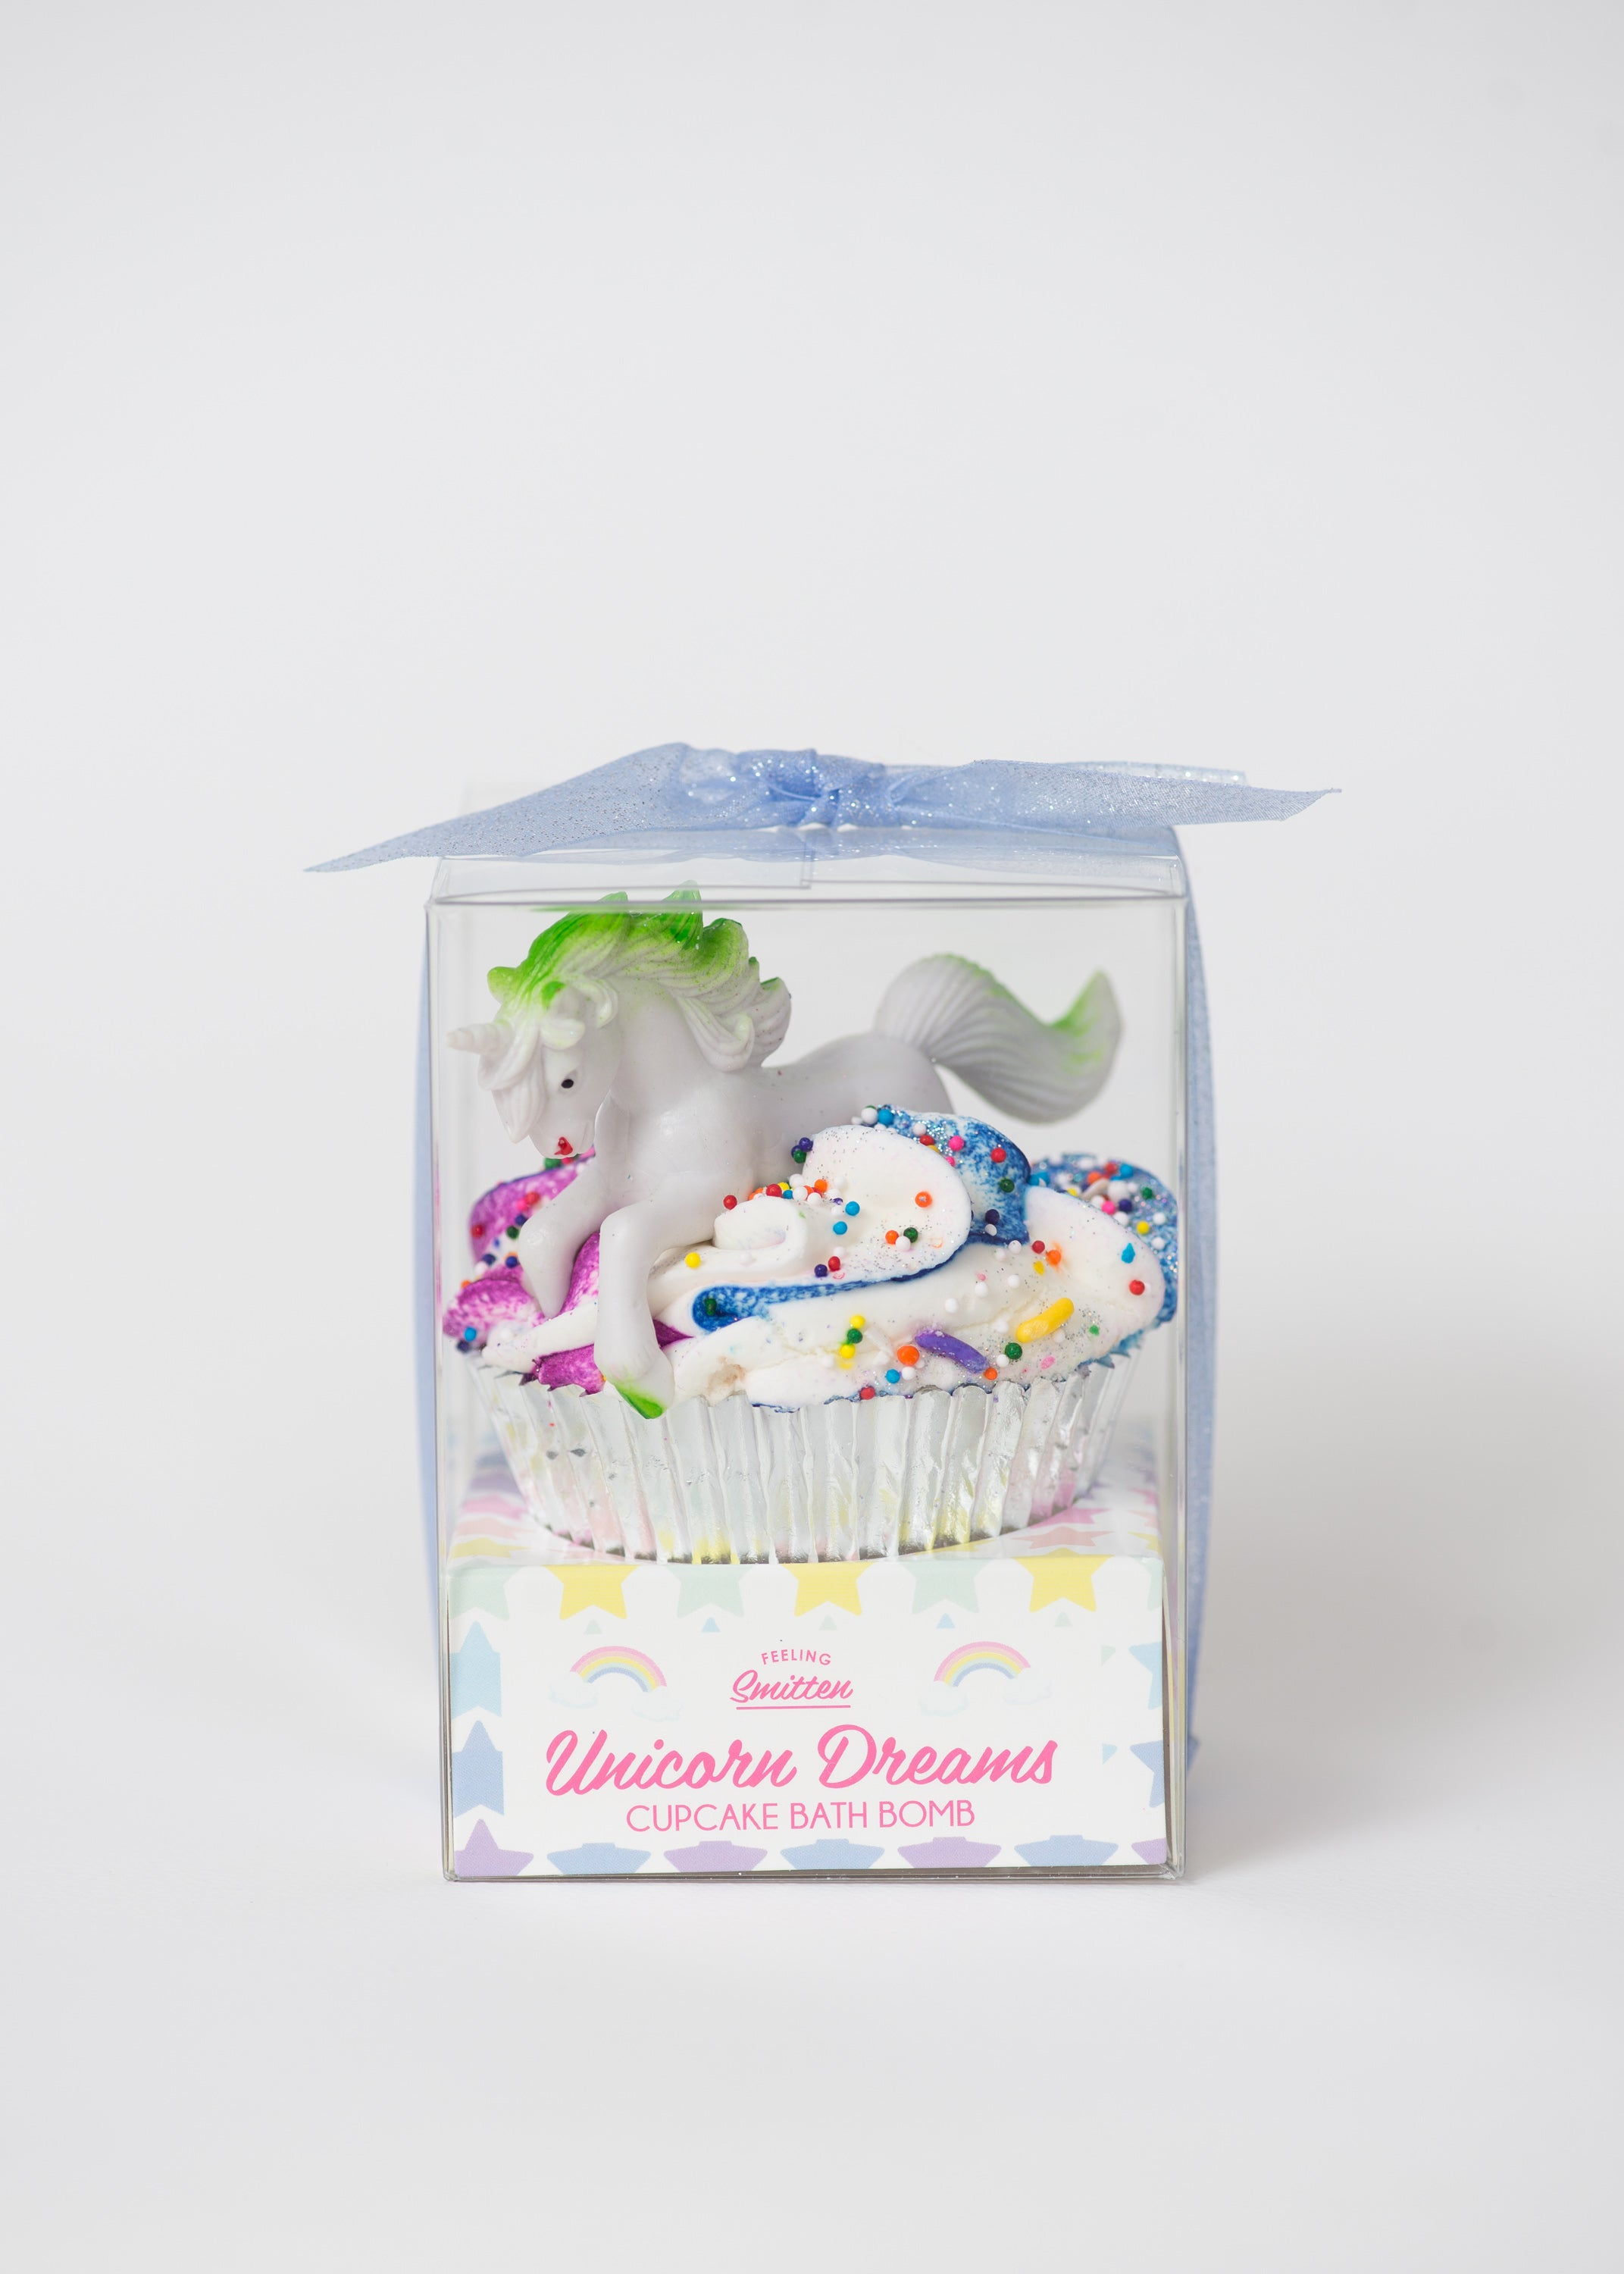 Feeling Smitten - Unicorn Dreams Cupcake